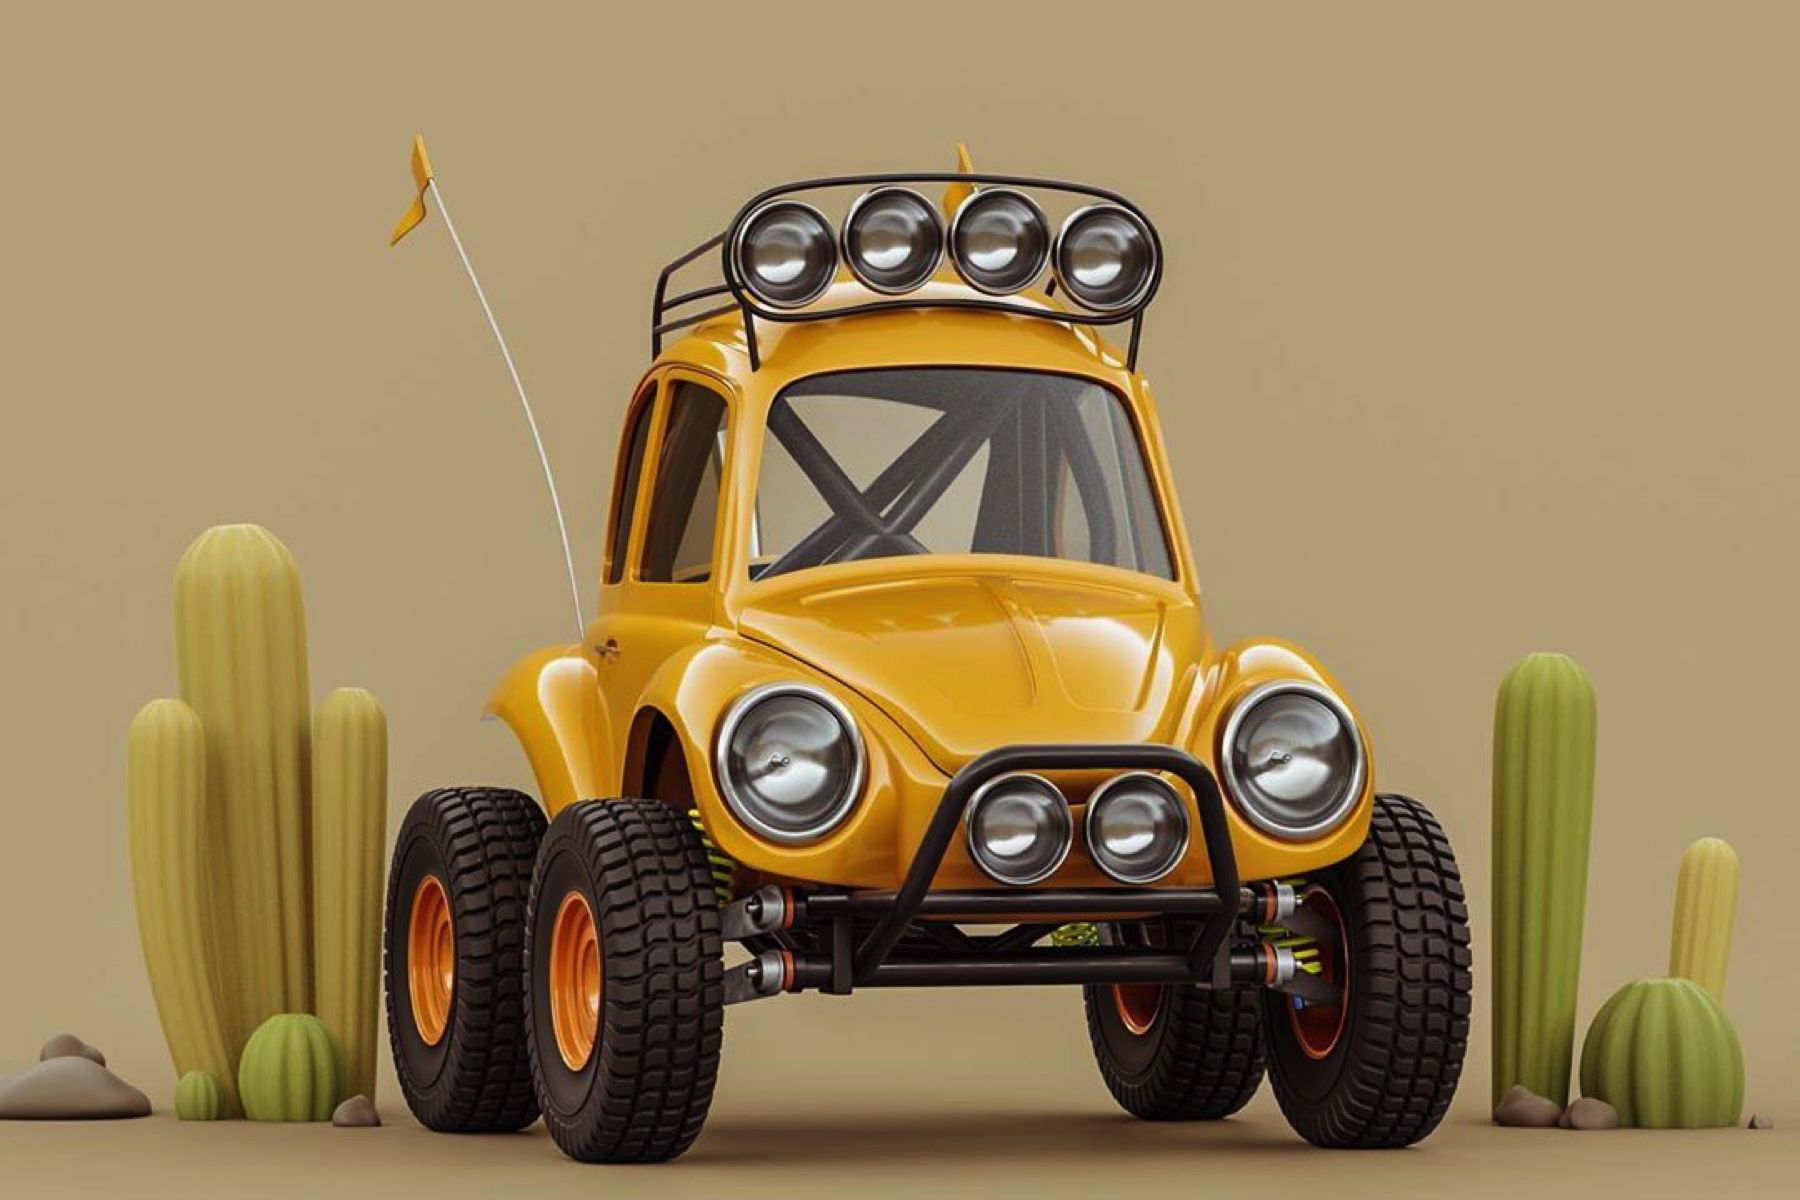 This artist's 3D drawings show the lighter side of some serious cars